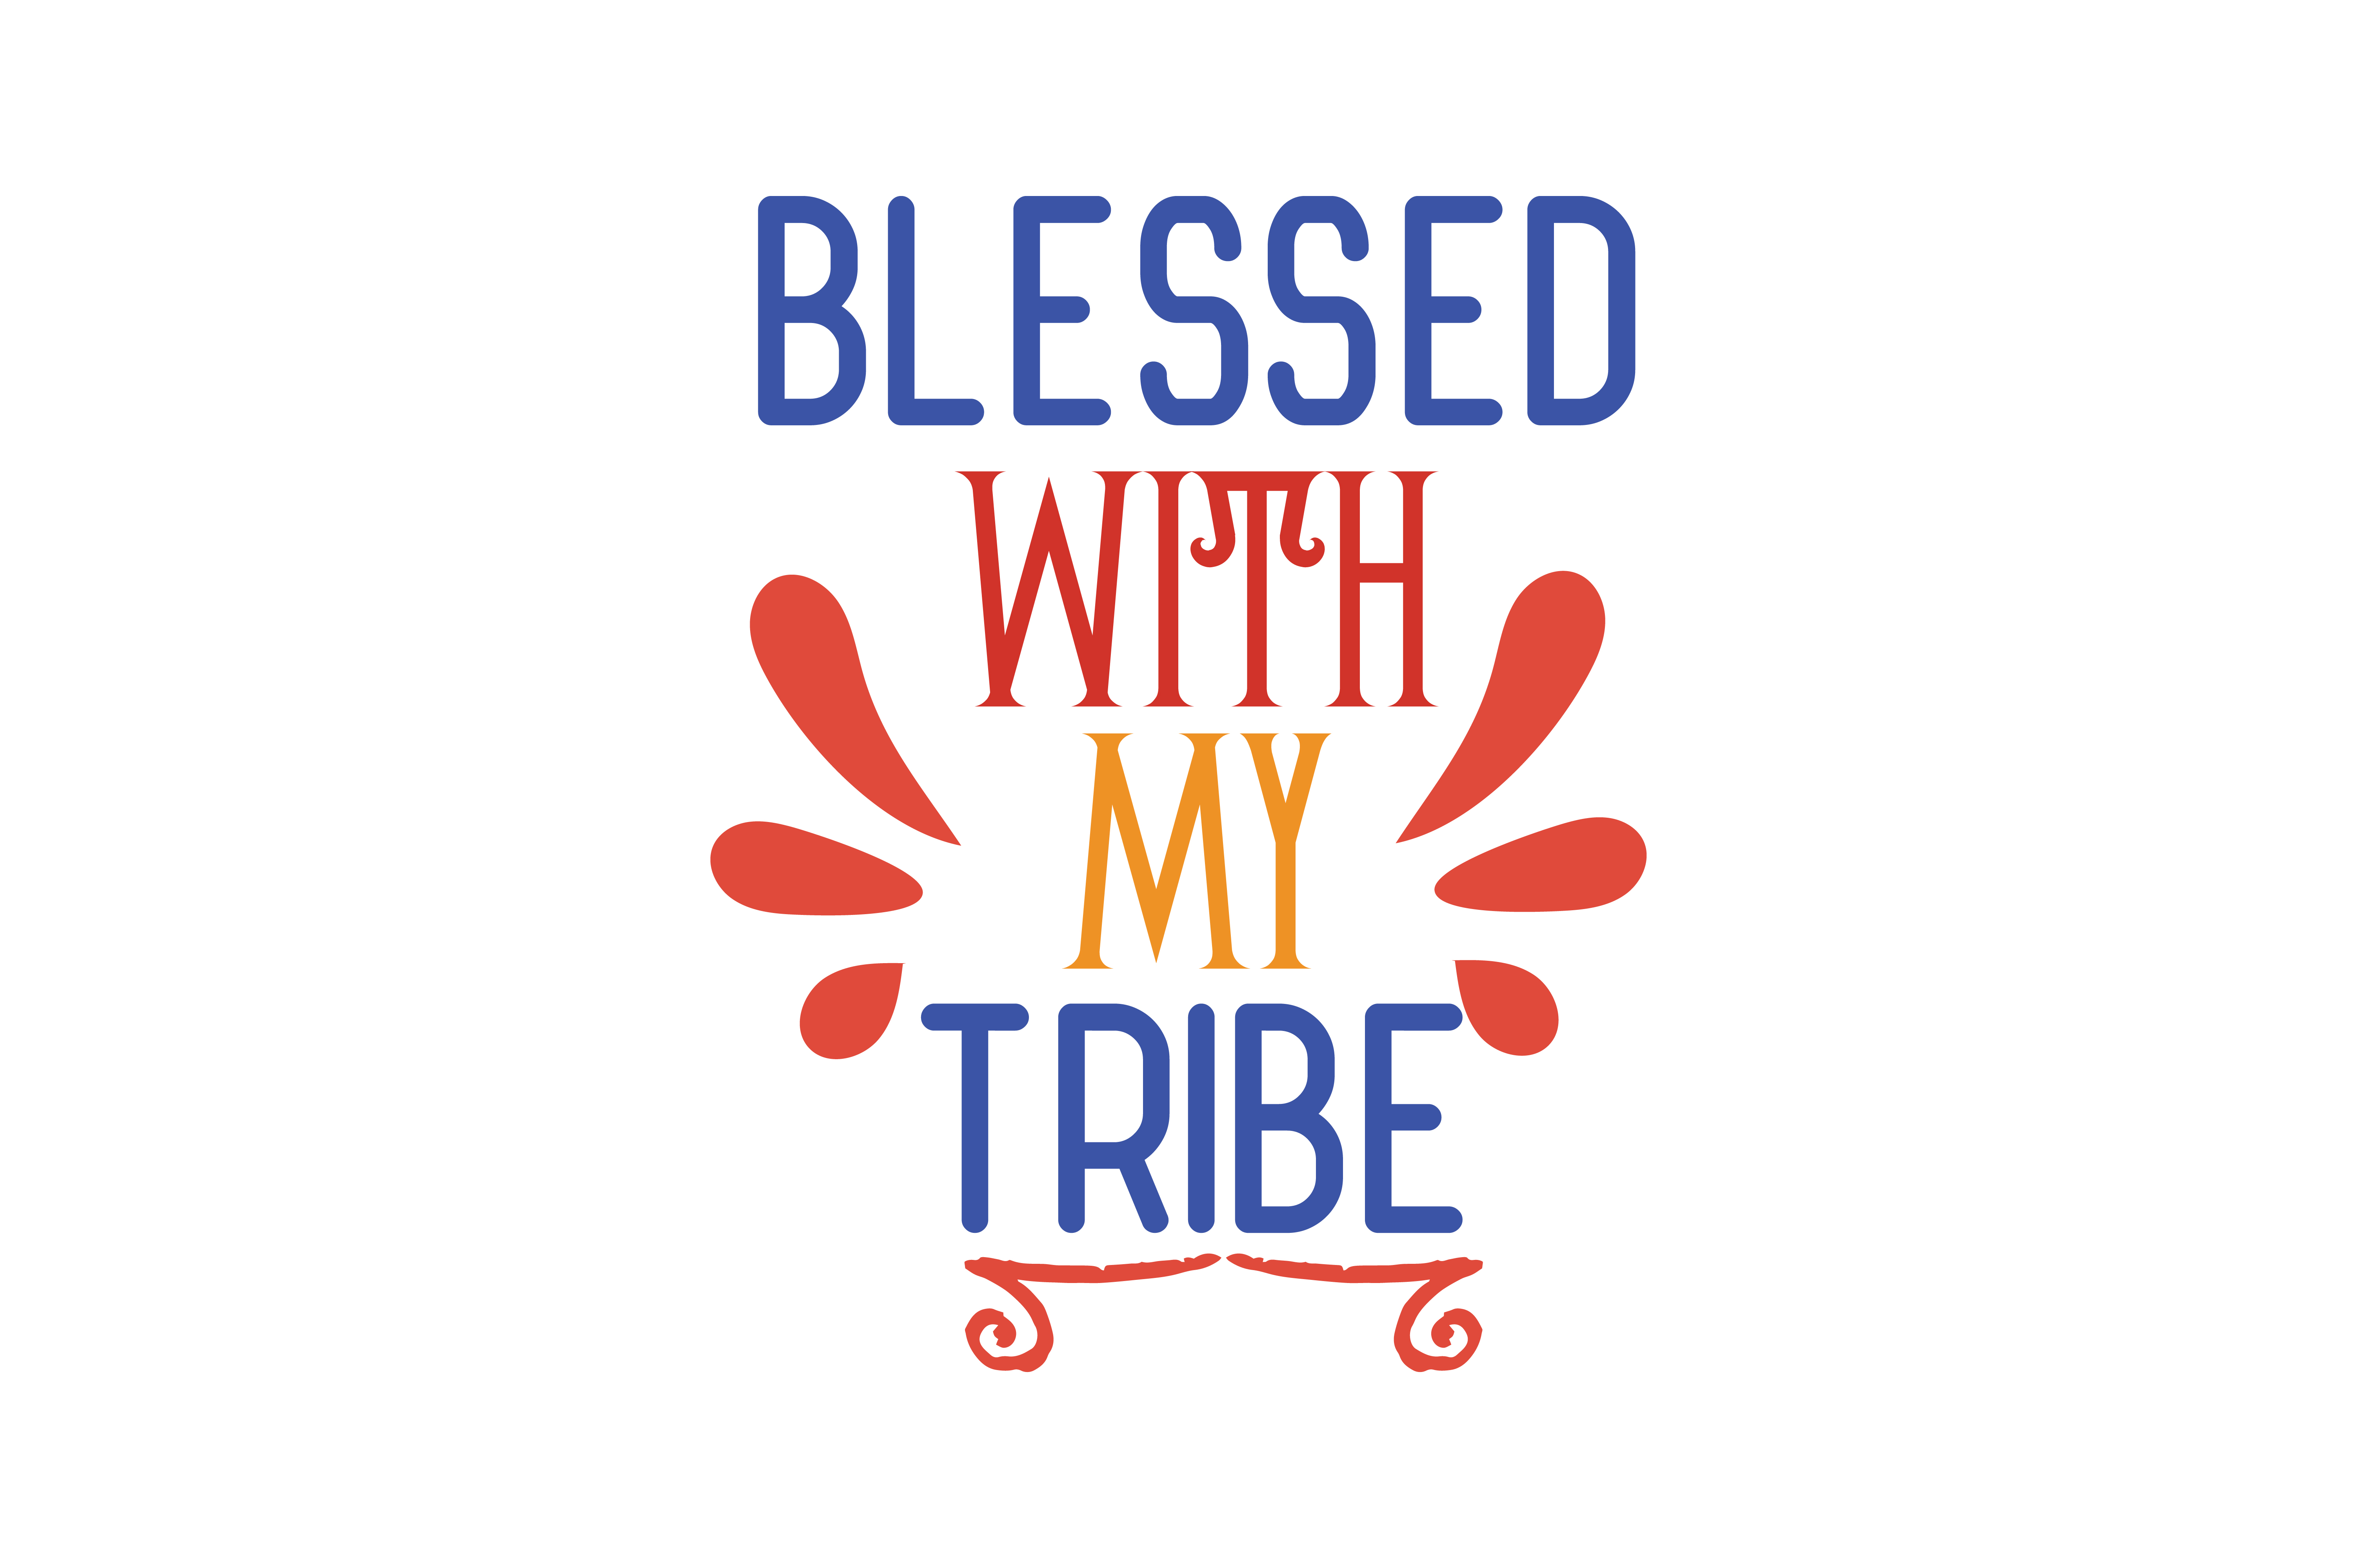 Download Free Blessed With My Tribe Svg Cut Quote Grafico Por Thelucky for Cricut Explore, Silhouette and other cutting machines.